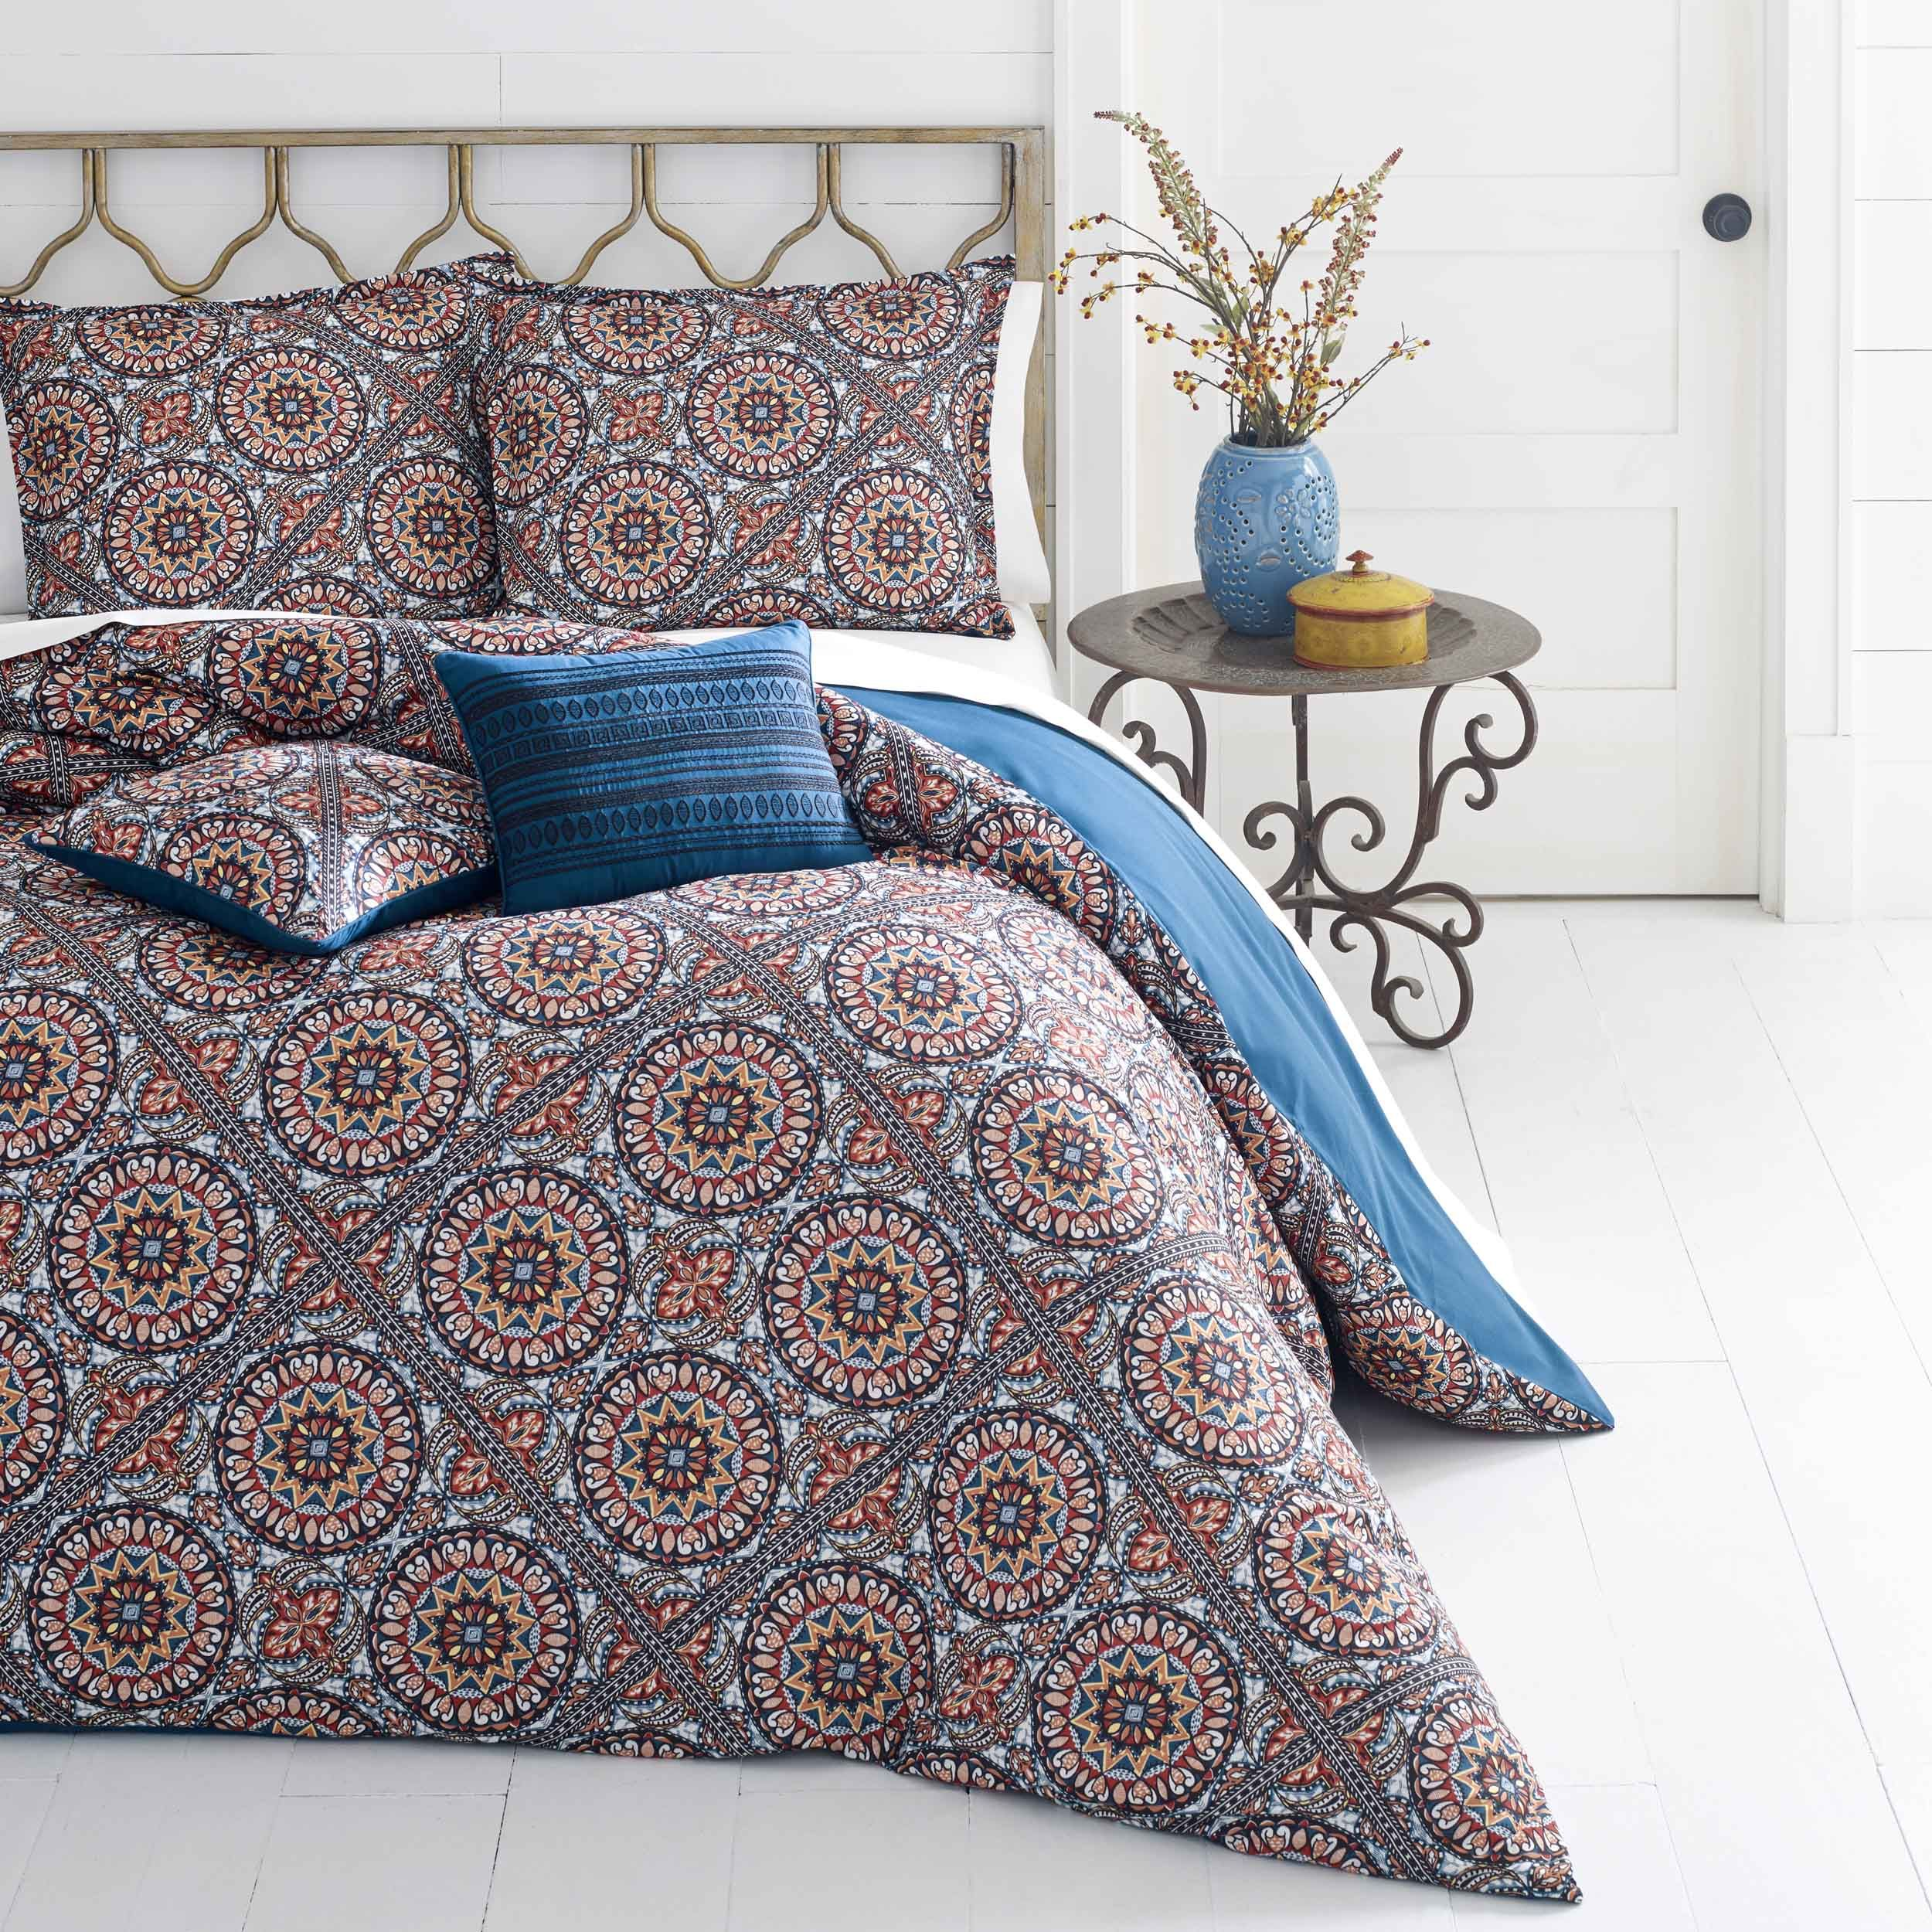 This colorful pattern is stunning We are loving our new bedding